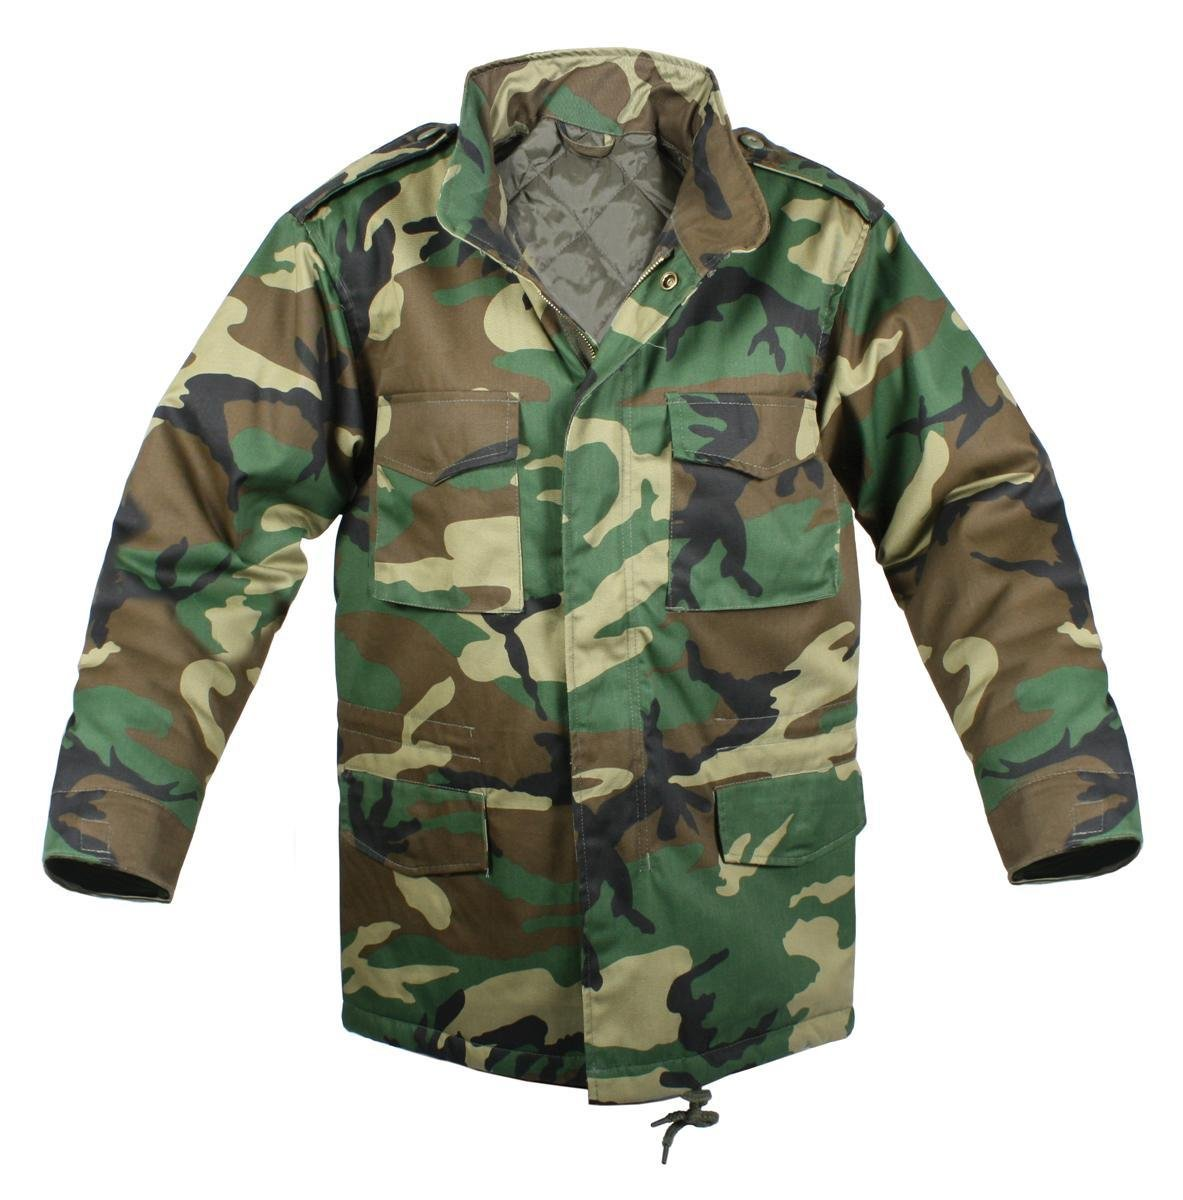 Rothco Kids M-65 Field Jacket W/Liner - Woodland RSR Group Inc 613902766037